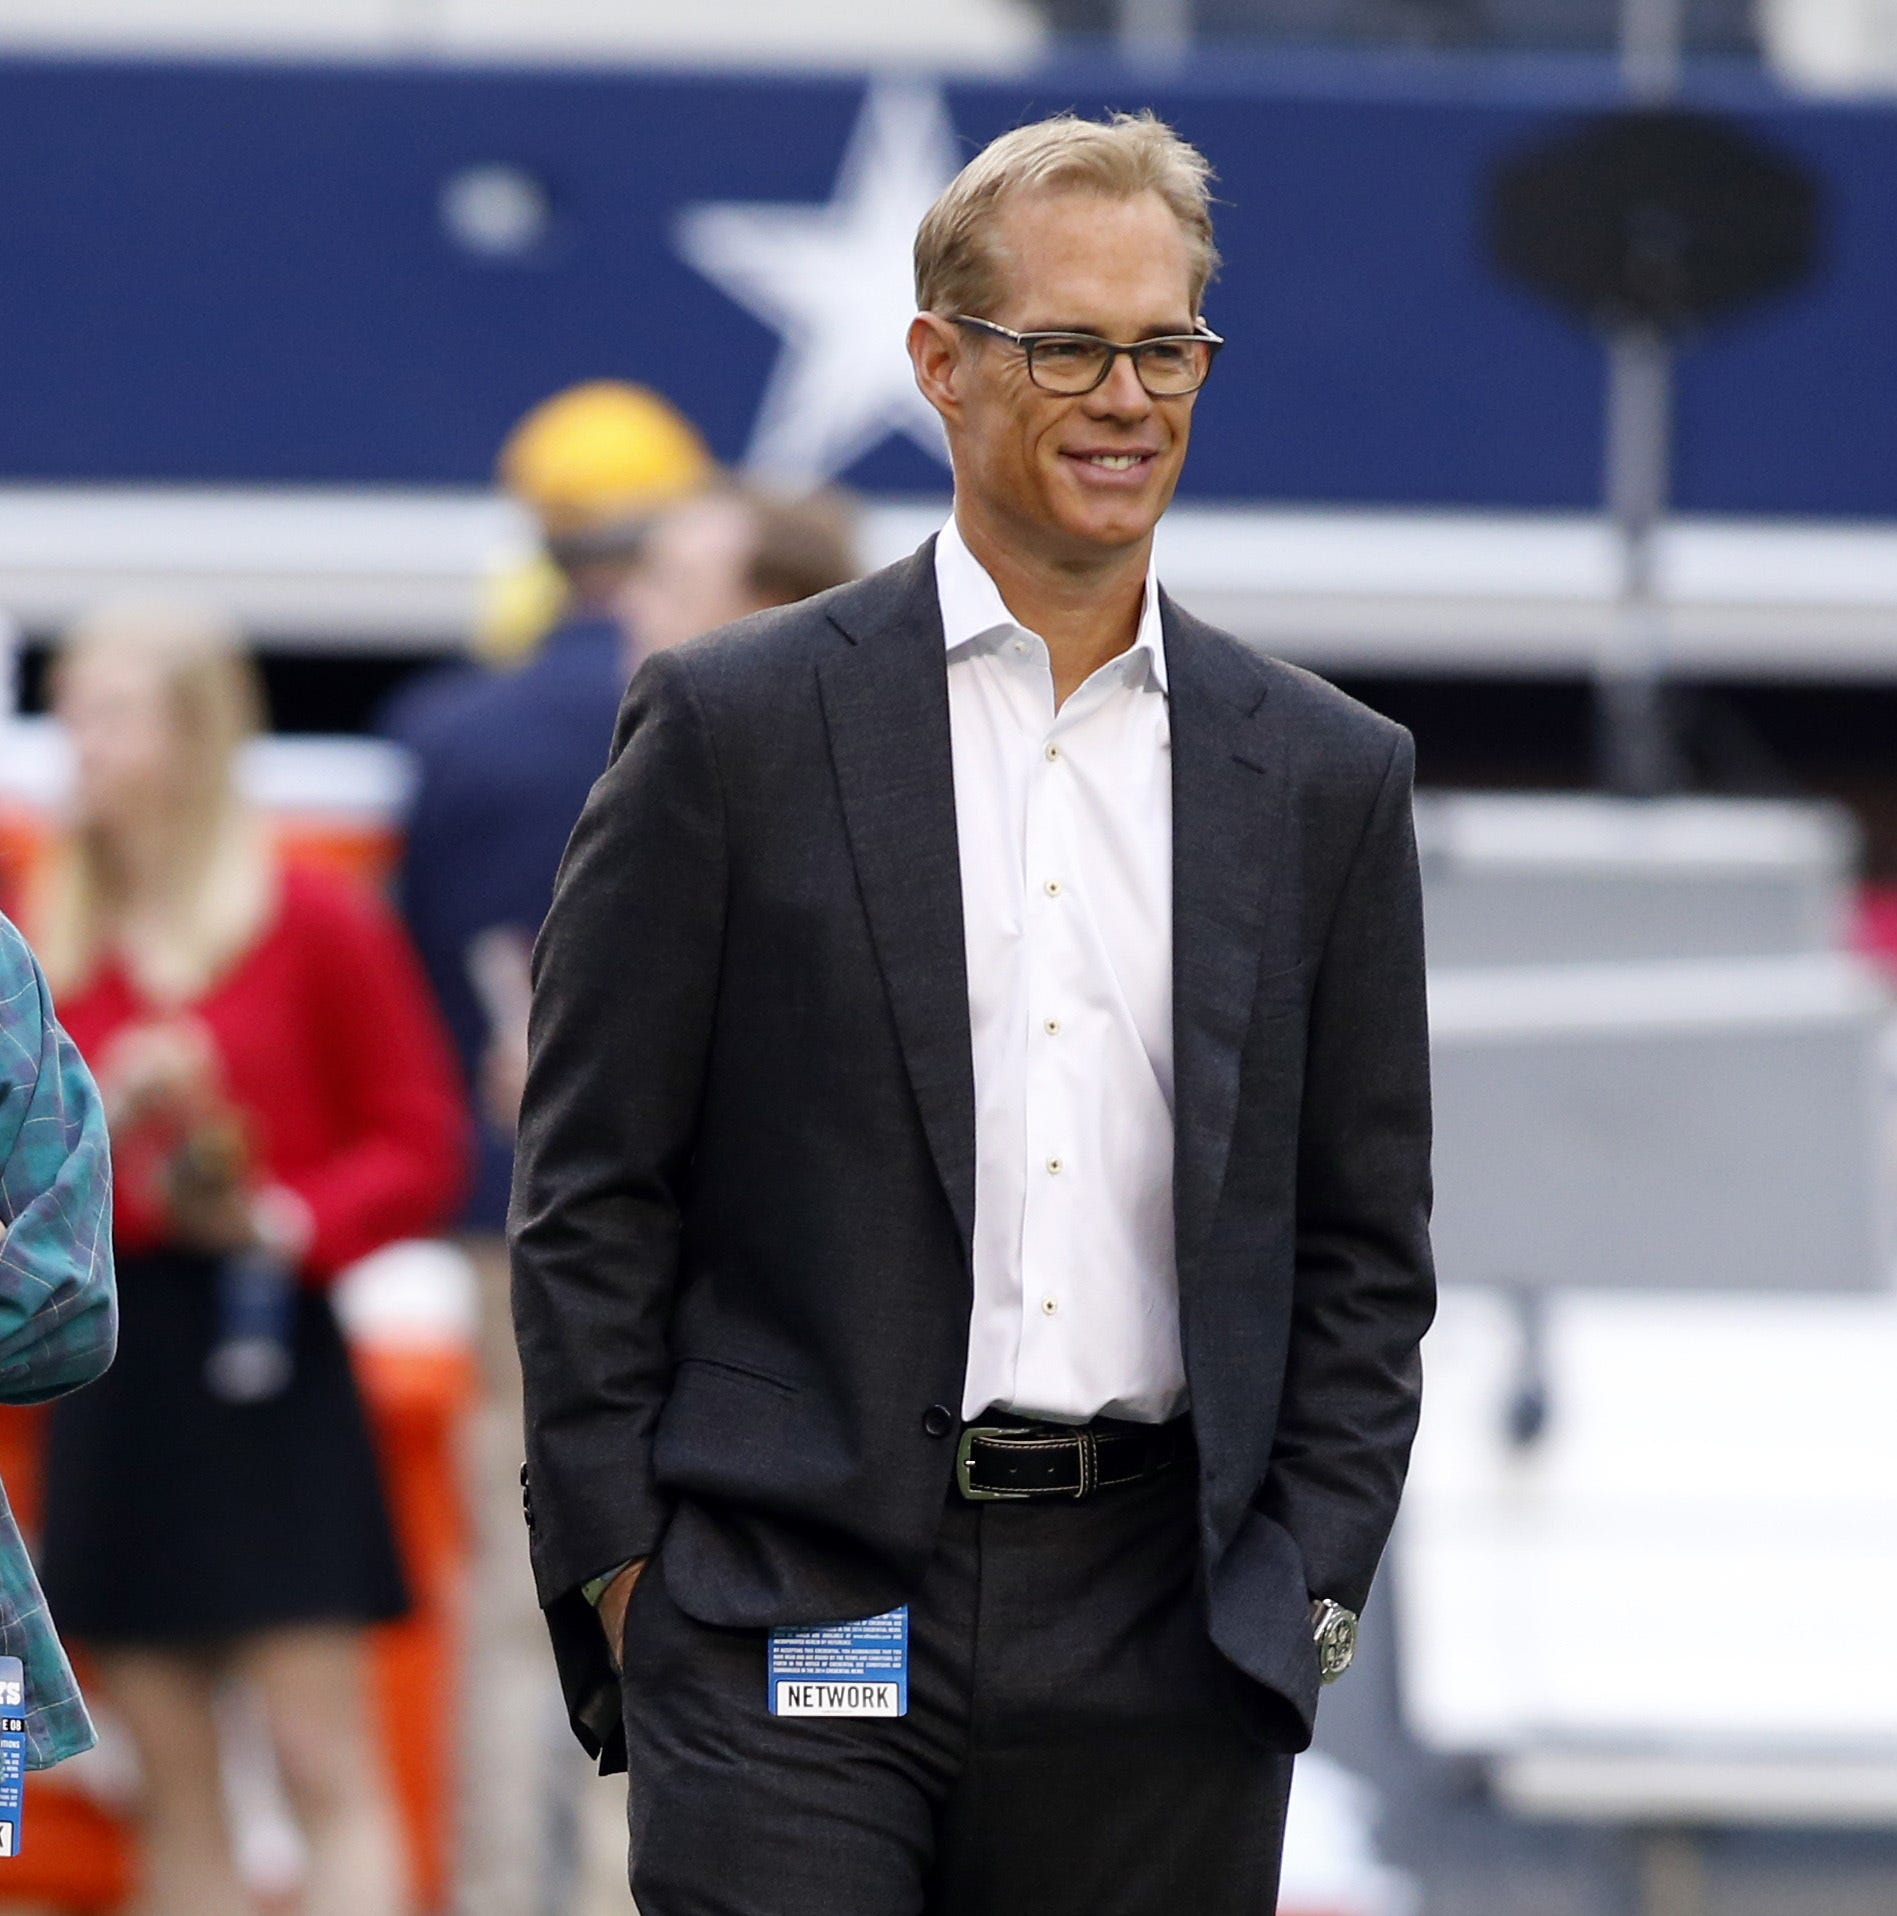 Wisconsin sports fans hate Joe Buck ... even the baseball version